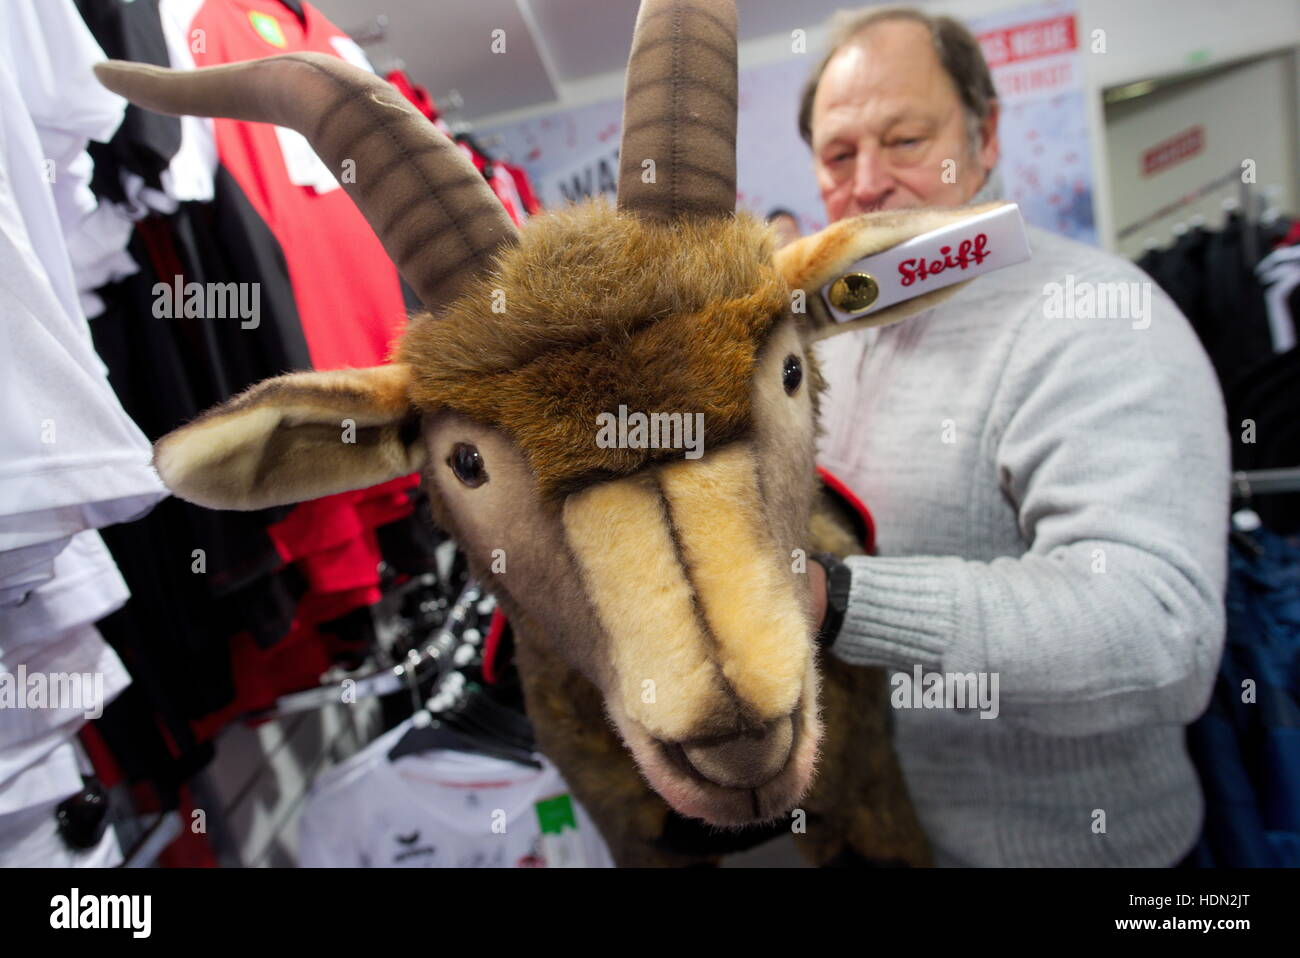 Cologne, Germany. 7th Dec, 2016. A fan looks at the life-sized plush toy of the club mascot of 1. FC Cologne, the - Stock Image